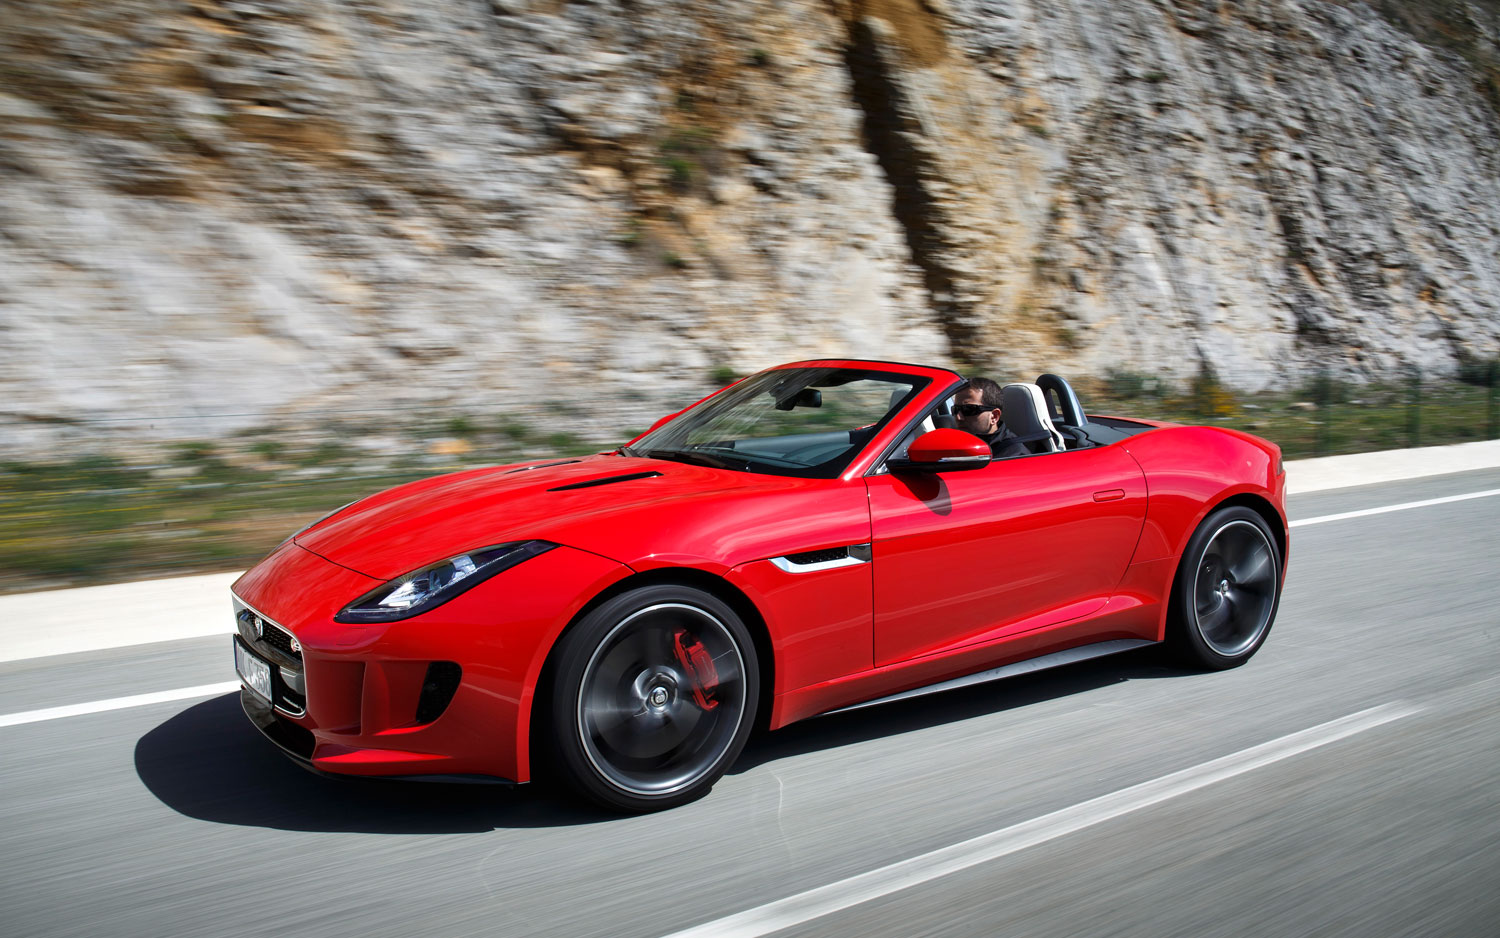 2013 jaguar f type v8 s pictures specifications interiors and exteriors infinity cars 2 u. Black Bedroom Furniture Sets. Home Design Ideas